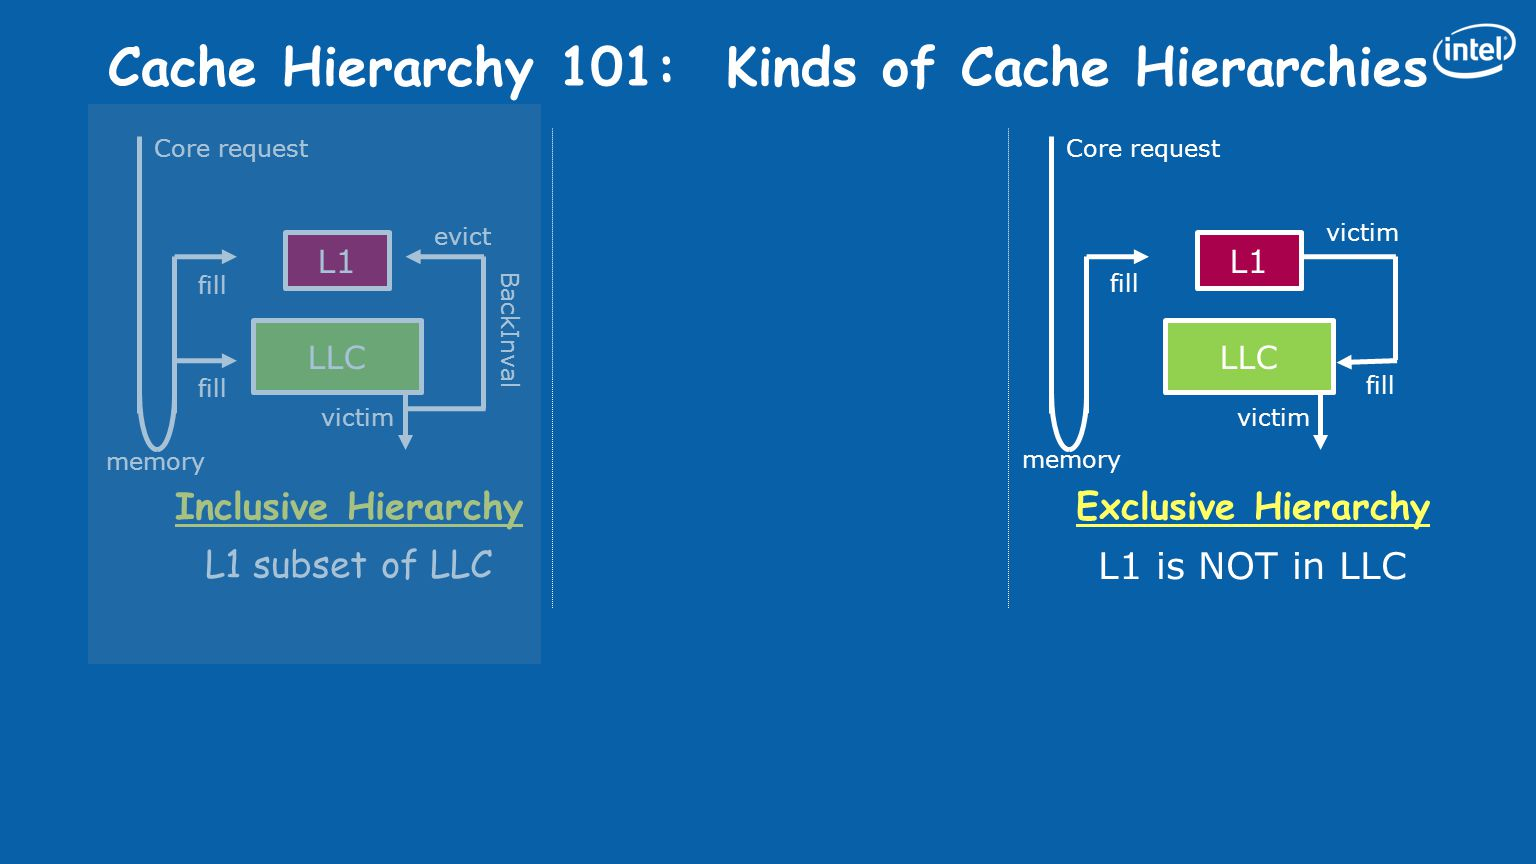 BackInval Cache Hierarchy 101: Kinds of Cache Hierarchies L1 LLC Inclusive Hierarchy L1 subset of LLC Non-Inclusive Hierarchy L1 not subset of LLC Exclusive Hierarchy L1 is NOT in LLC victim L1 LLC victim fill L1 LLC fill Core request memory evict victim